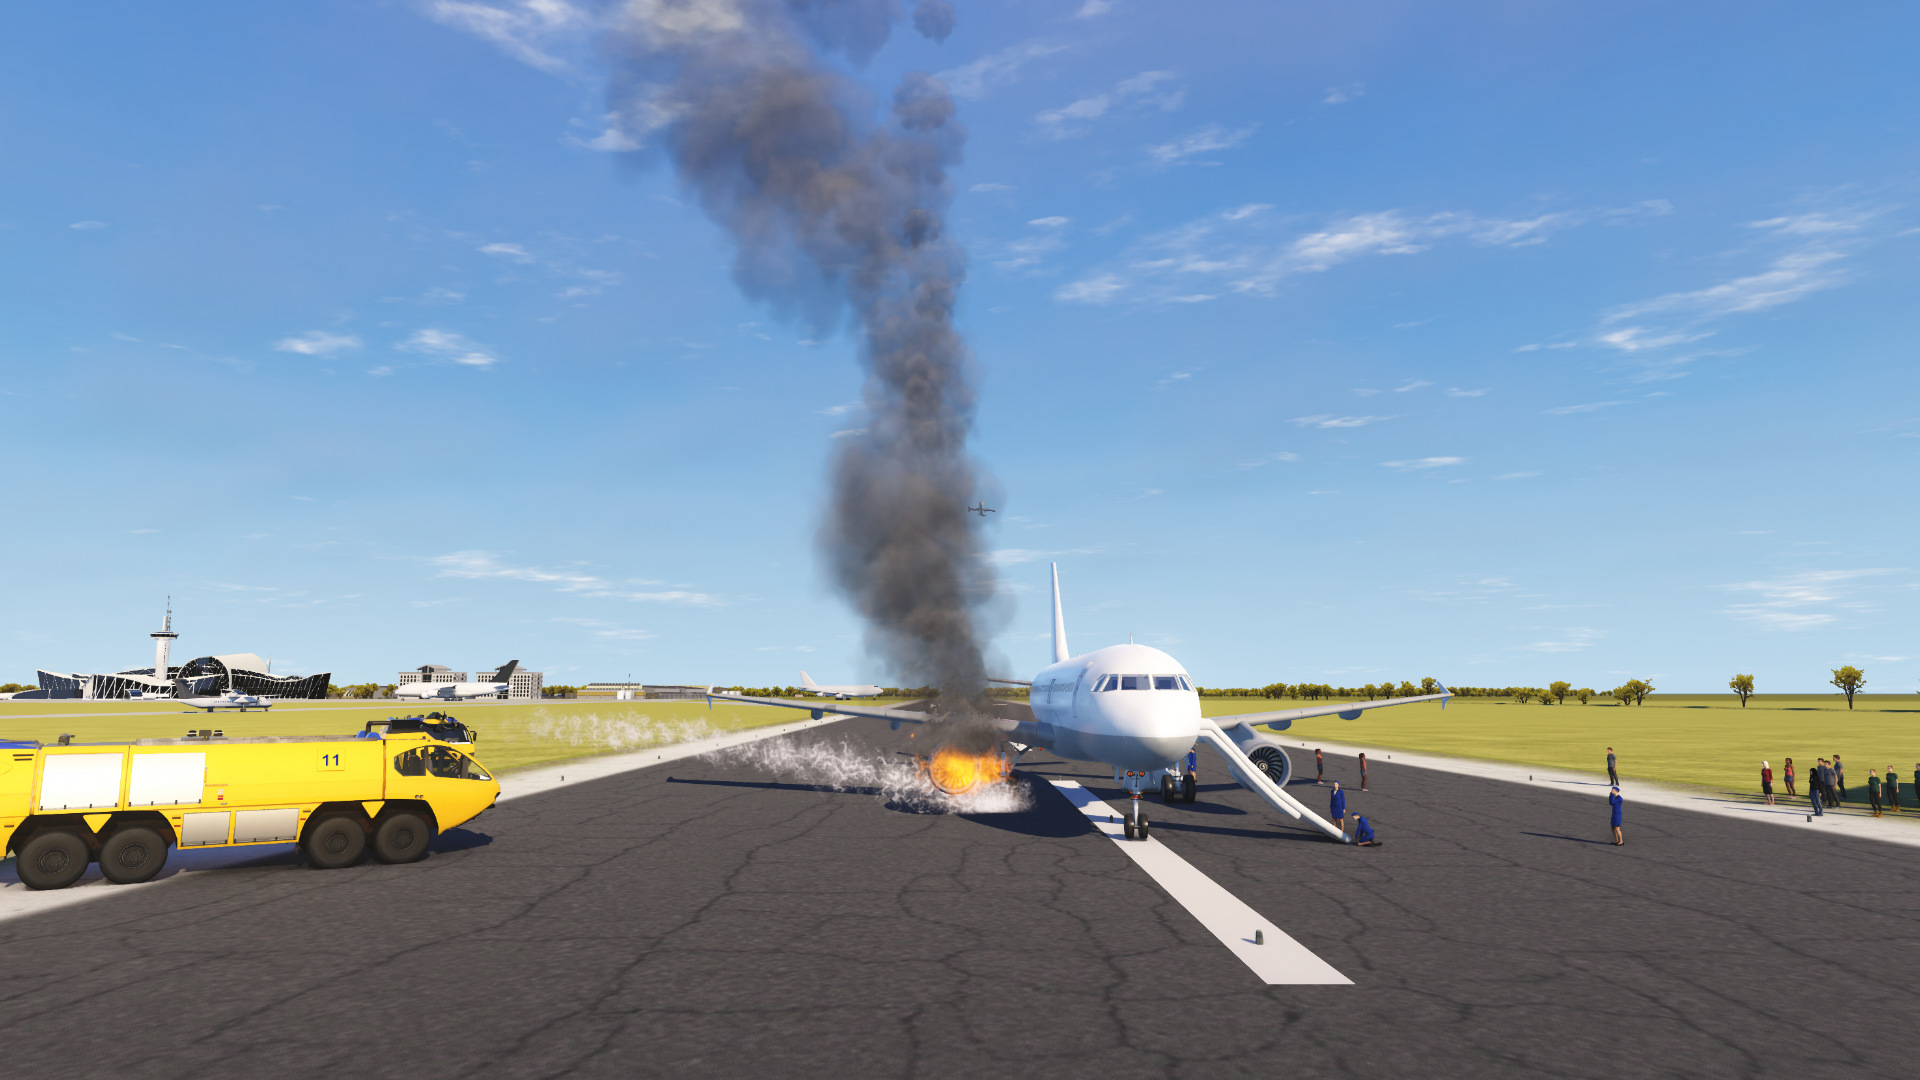 RS Aviation Incident